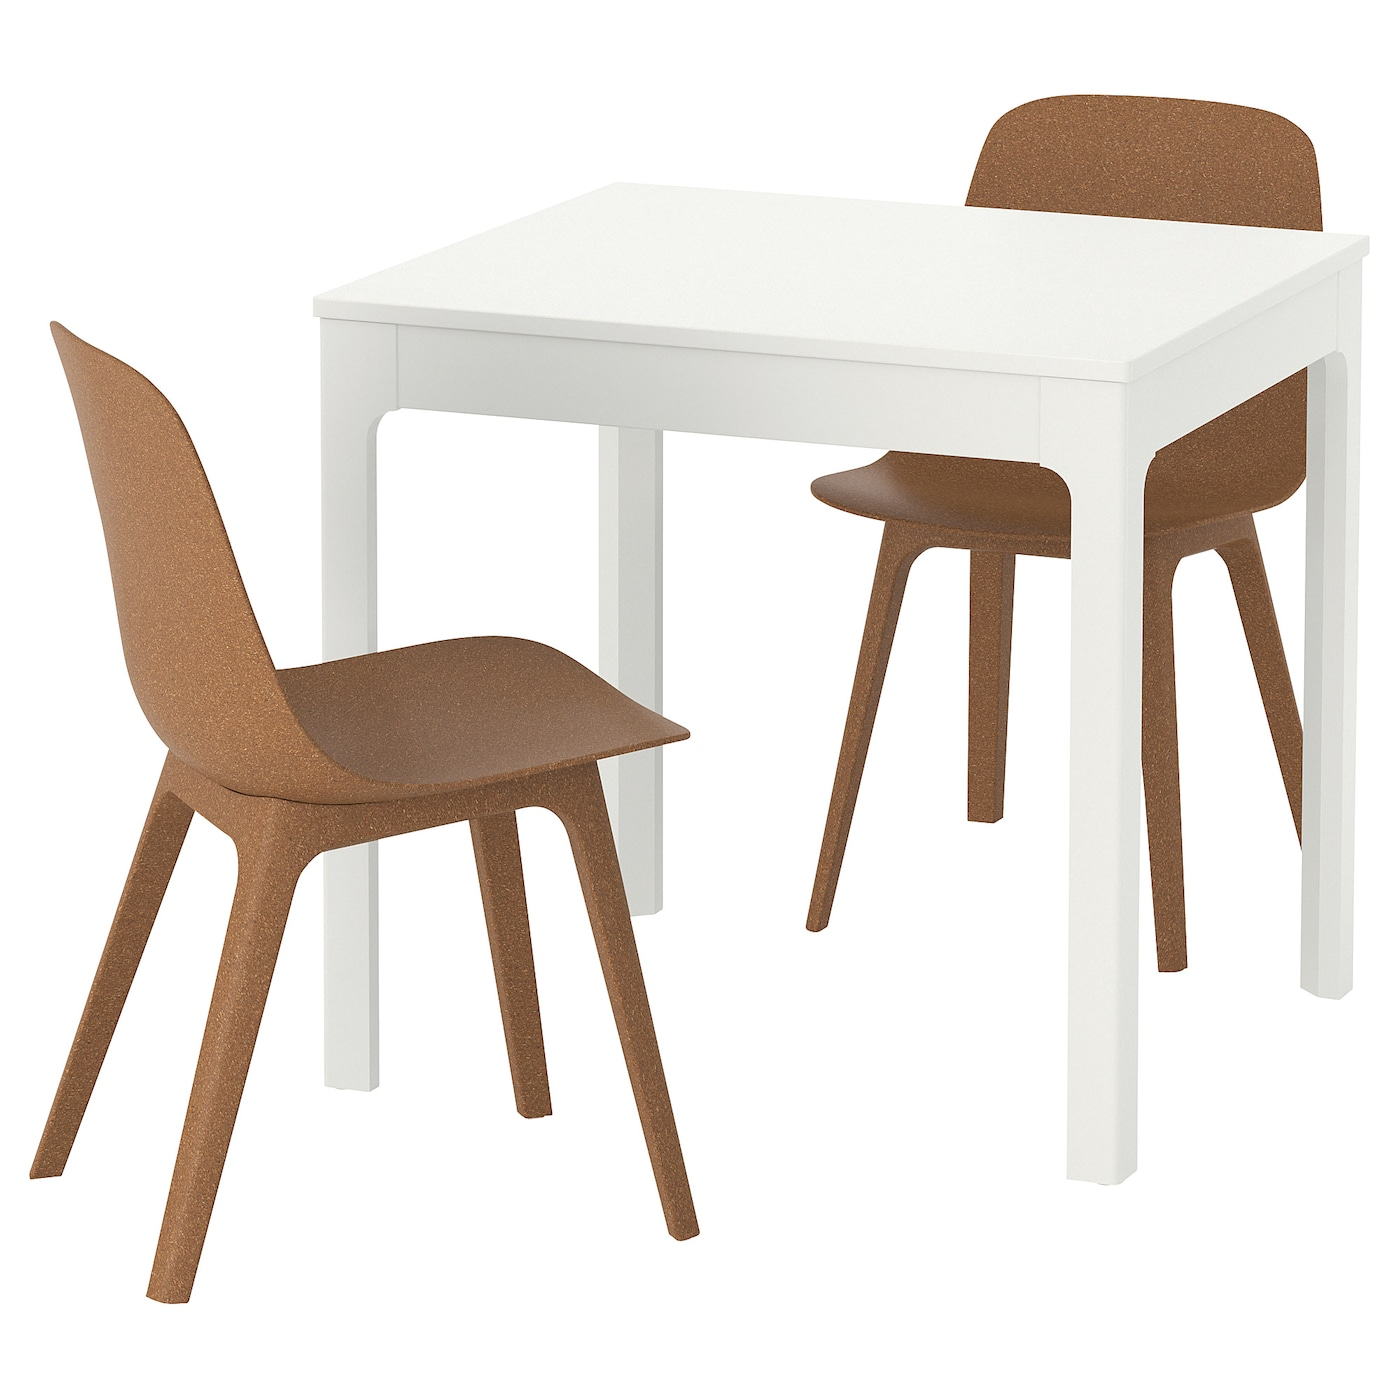 IKEA ODGER/EKEDALEN table and 2 chairs Can be easily extended by one person.